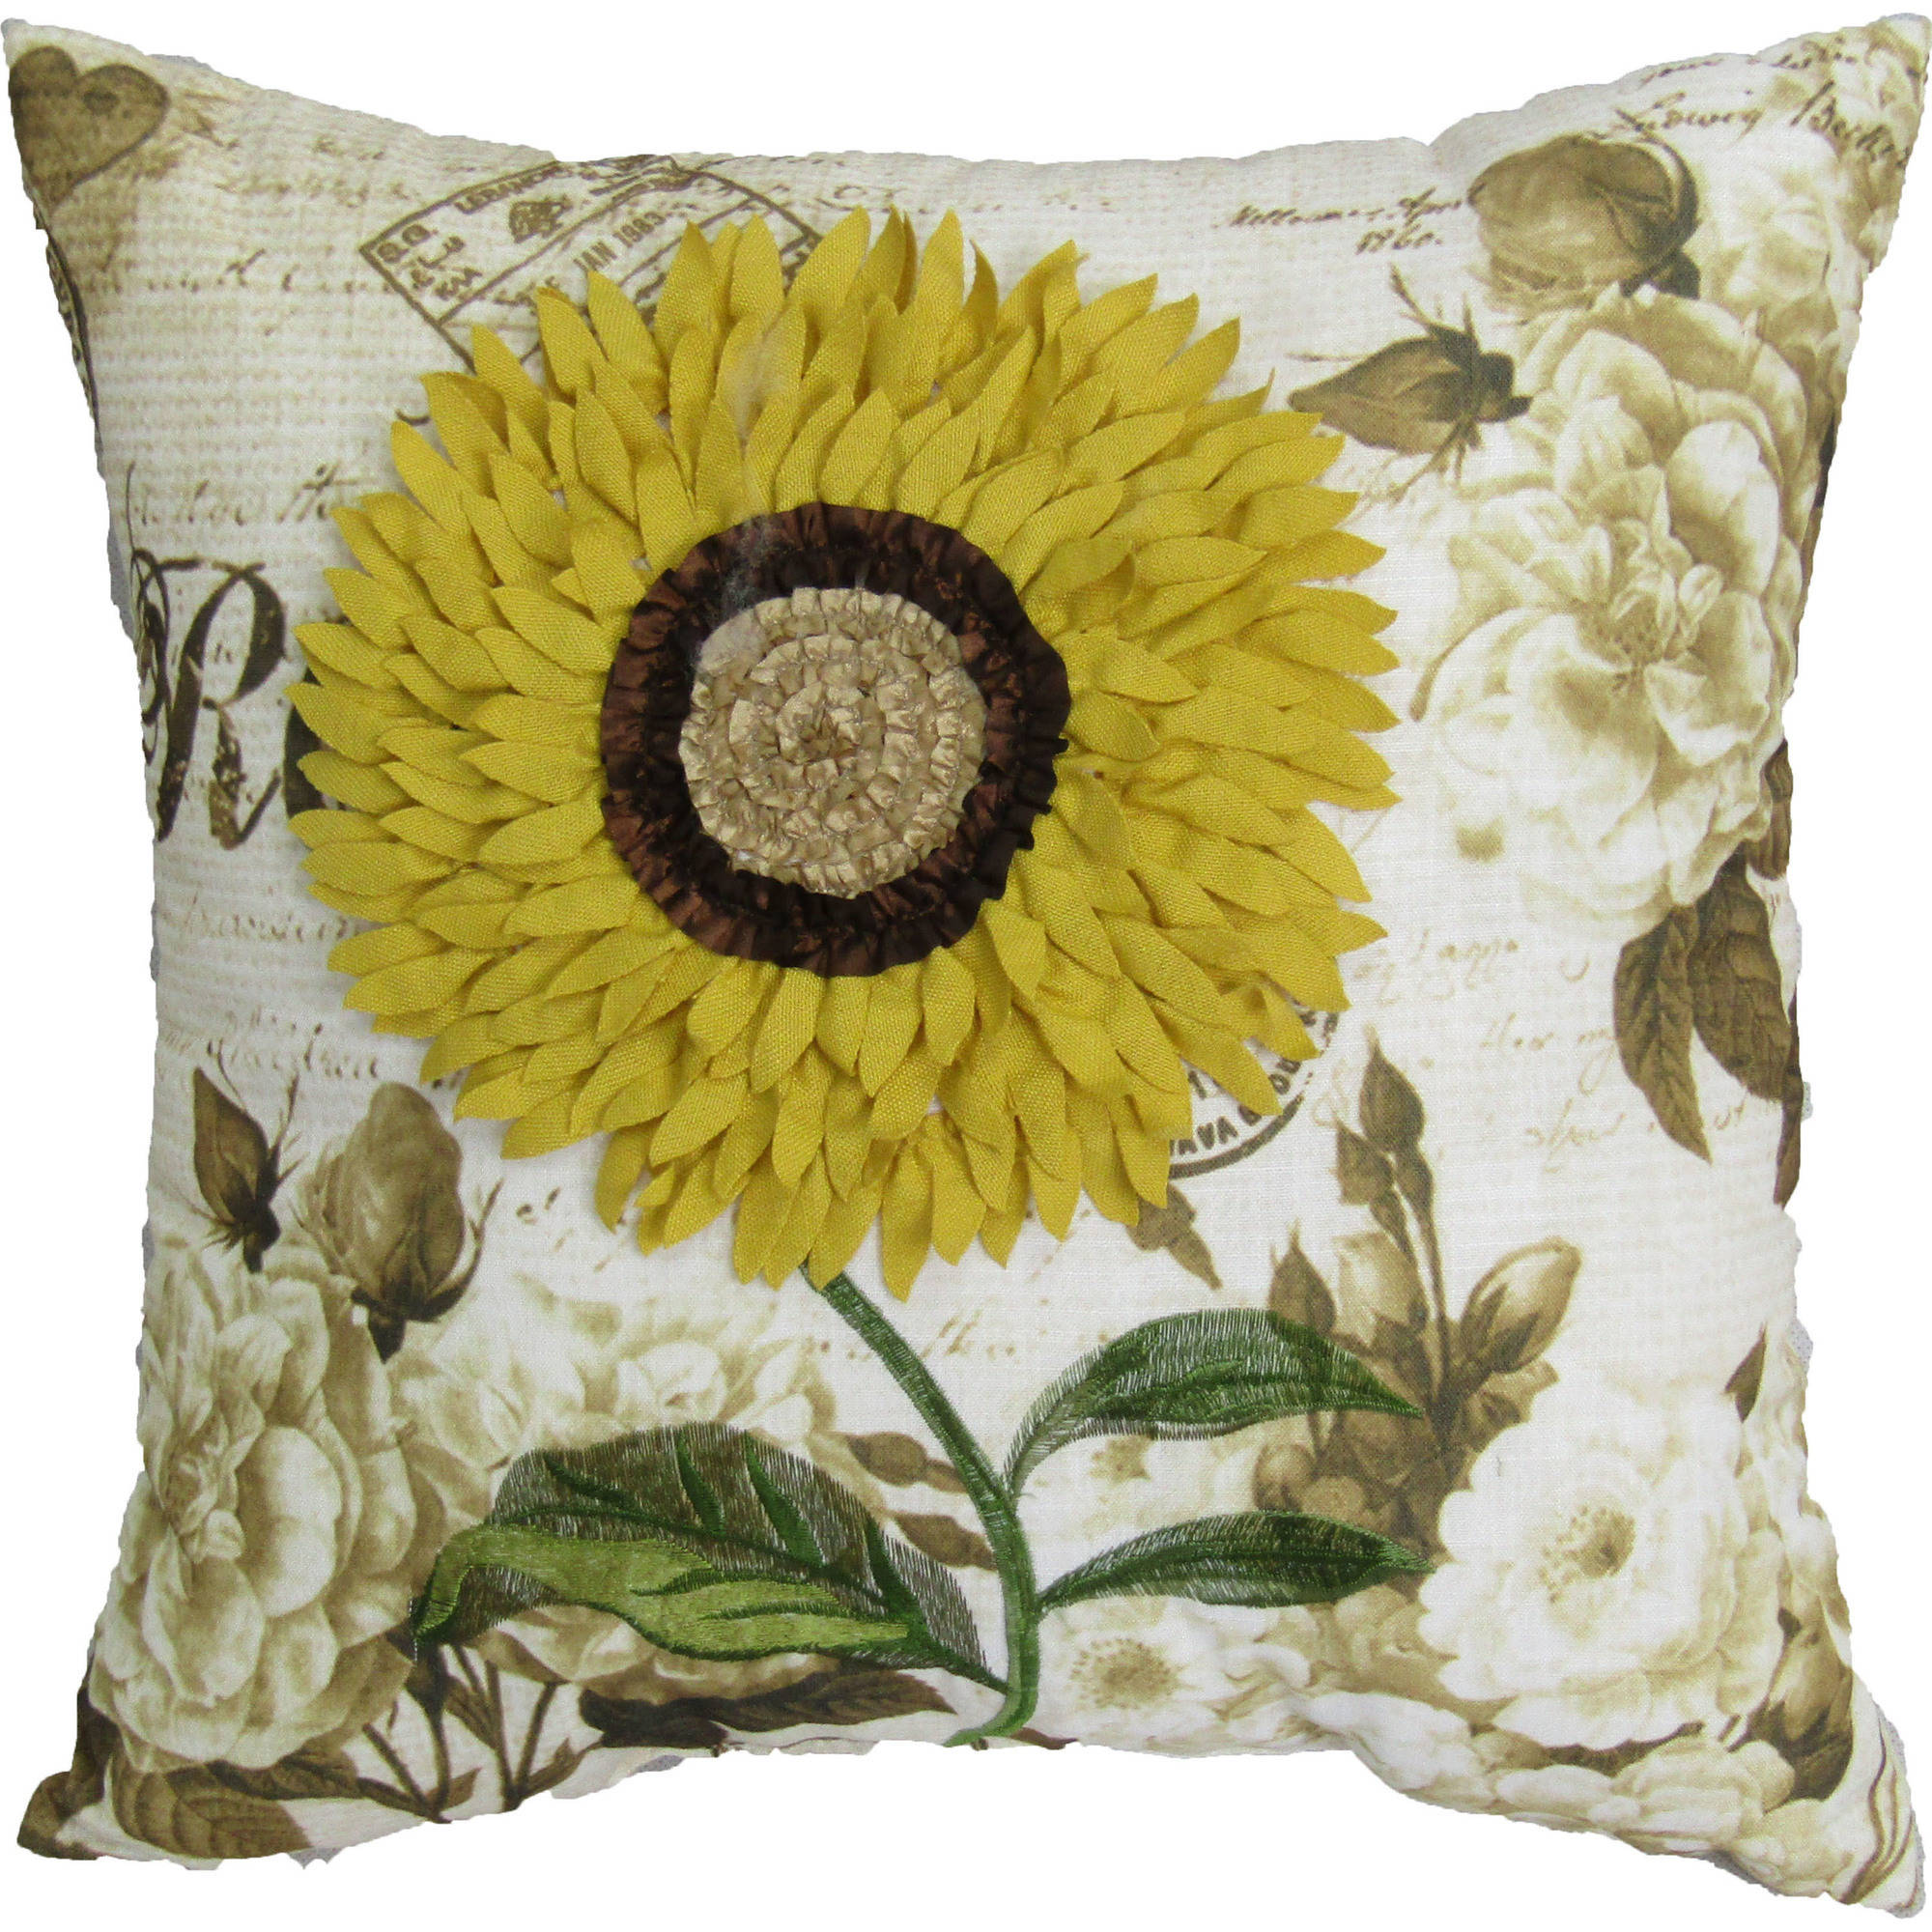 Better homes and gardens 18 x18 sunflower pillow at home - Better homes and gardens pillows ...